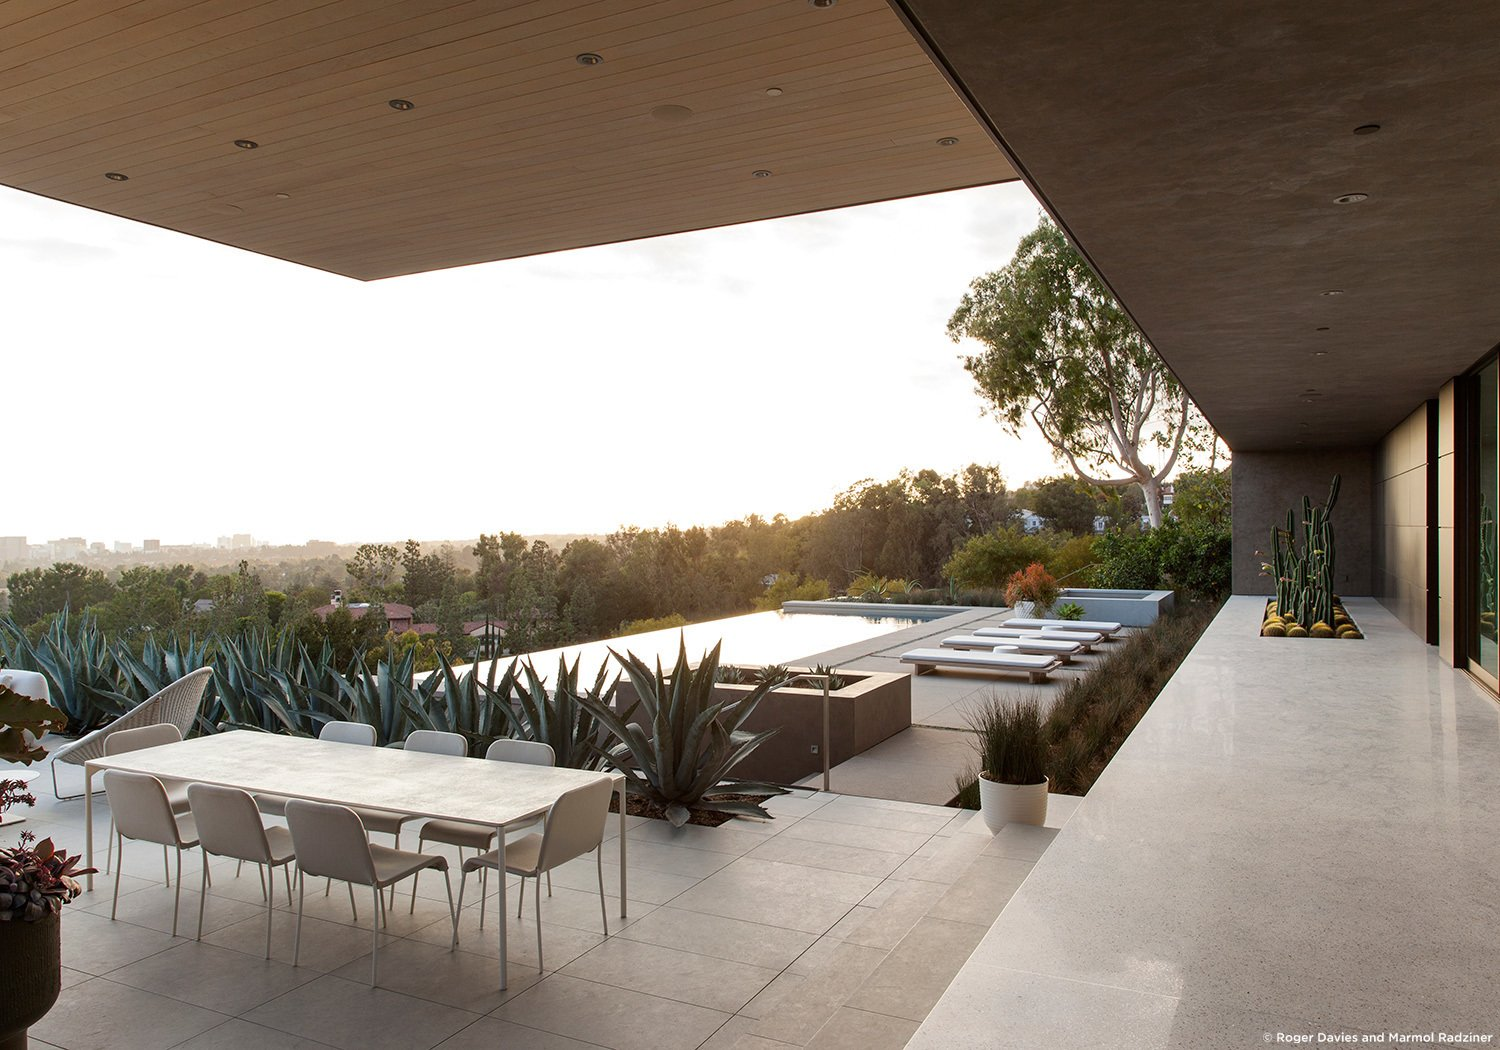 #SummitridgeResidence #modern #midcentury #levels #exterior #outside #outdoor #landscape #green #geometry #pool #view #seating #table #deck #structure #BeverlyHills #MarmolRadziner  Summitridge Residence by Marmol Radziner